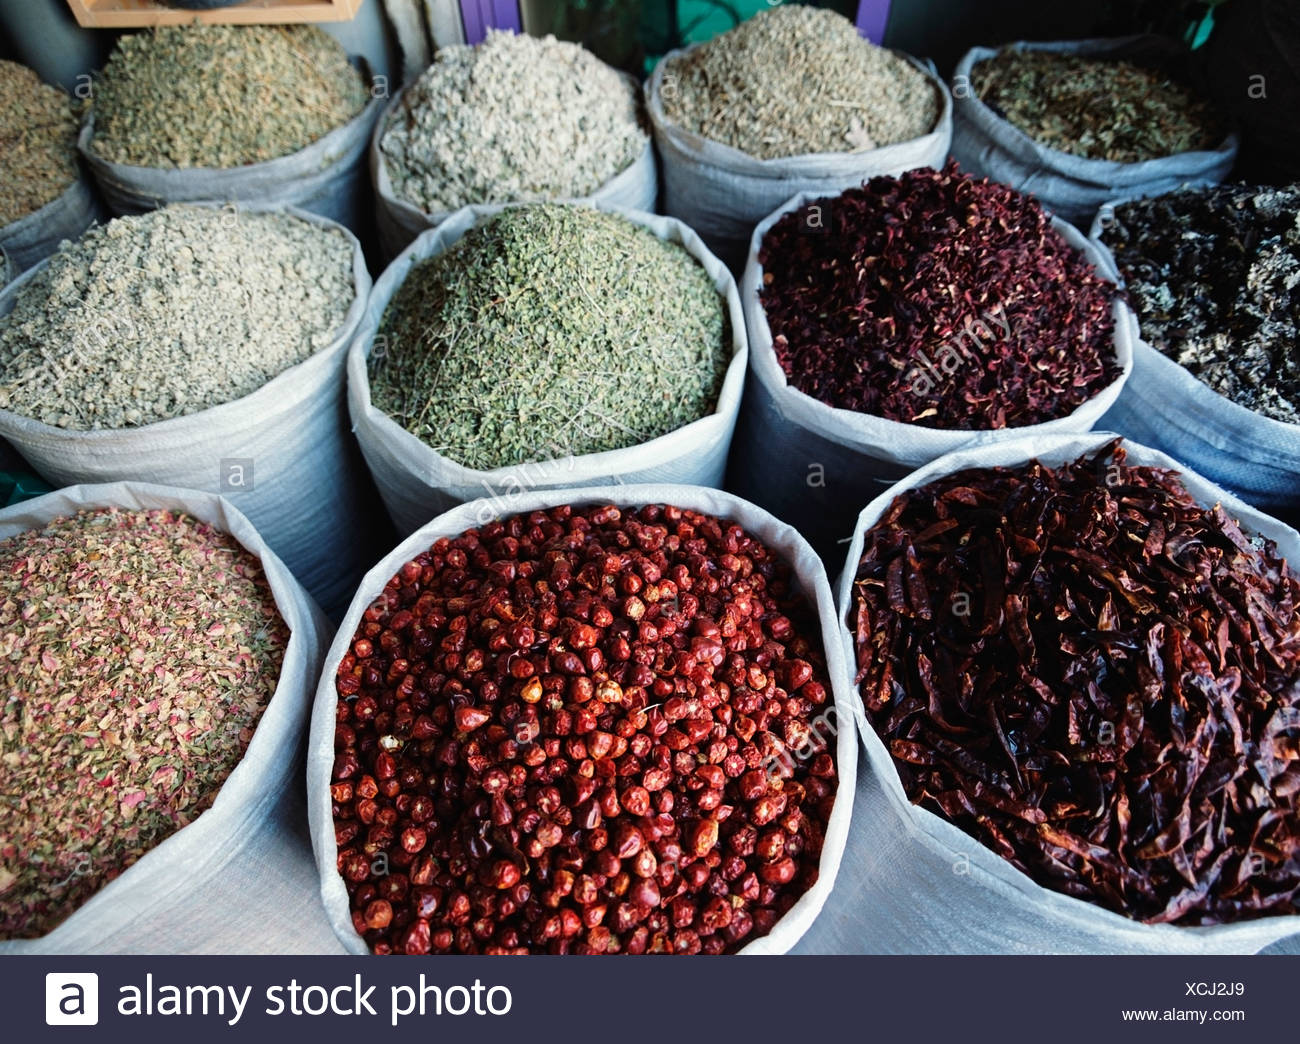 Sacks Of Spices - Stock Image